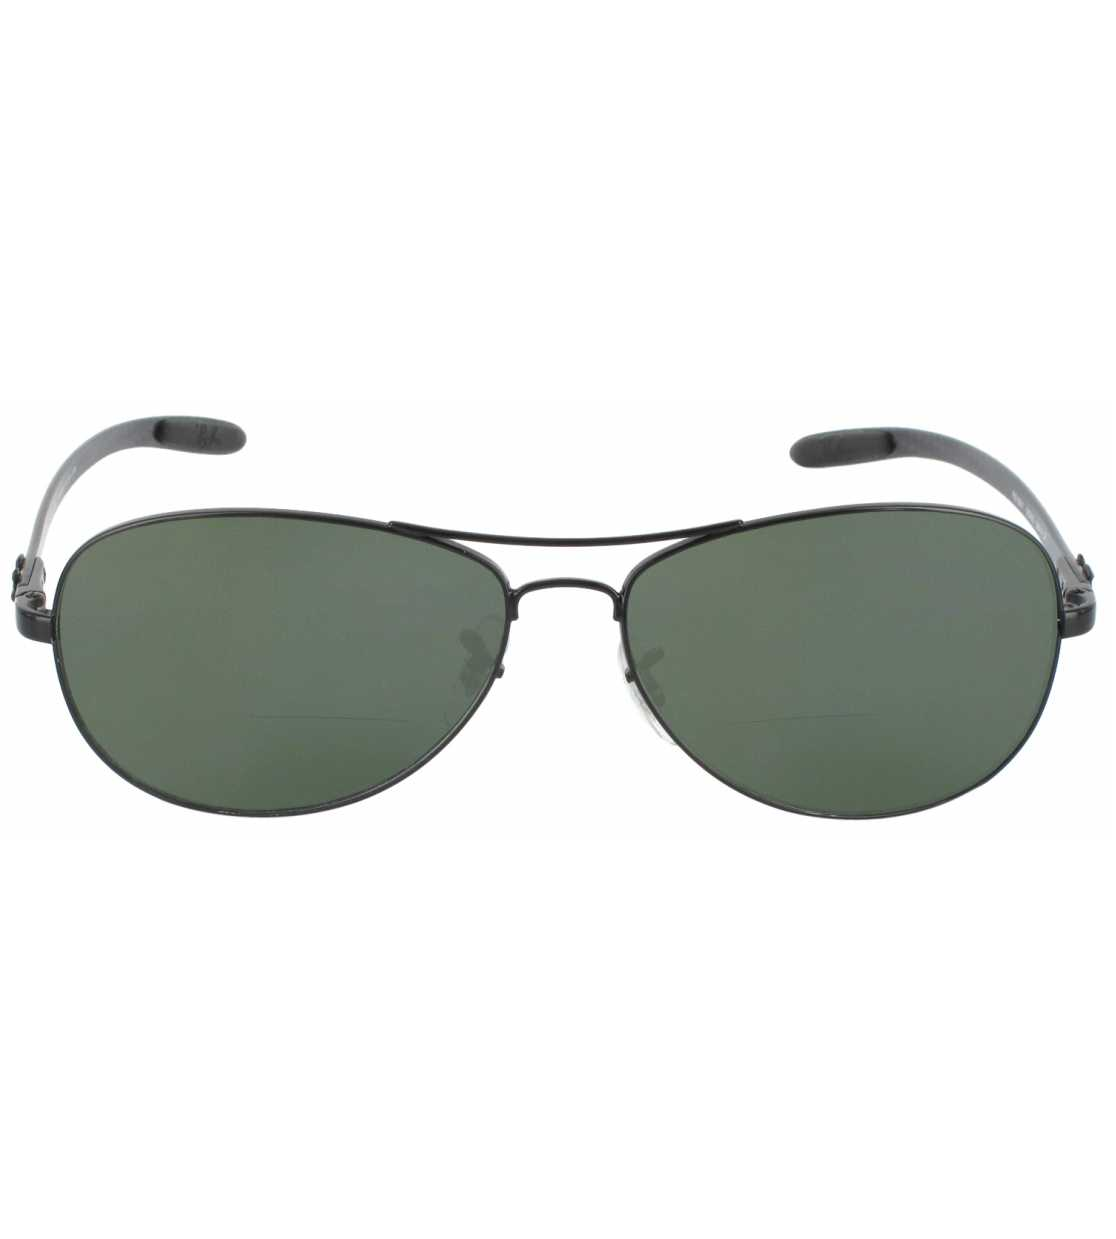 39450577ac7f Design By Ray-Ban. Ray-Ban 8301  285. Polarized Bifocal Reading Sunglasses.  Black